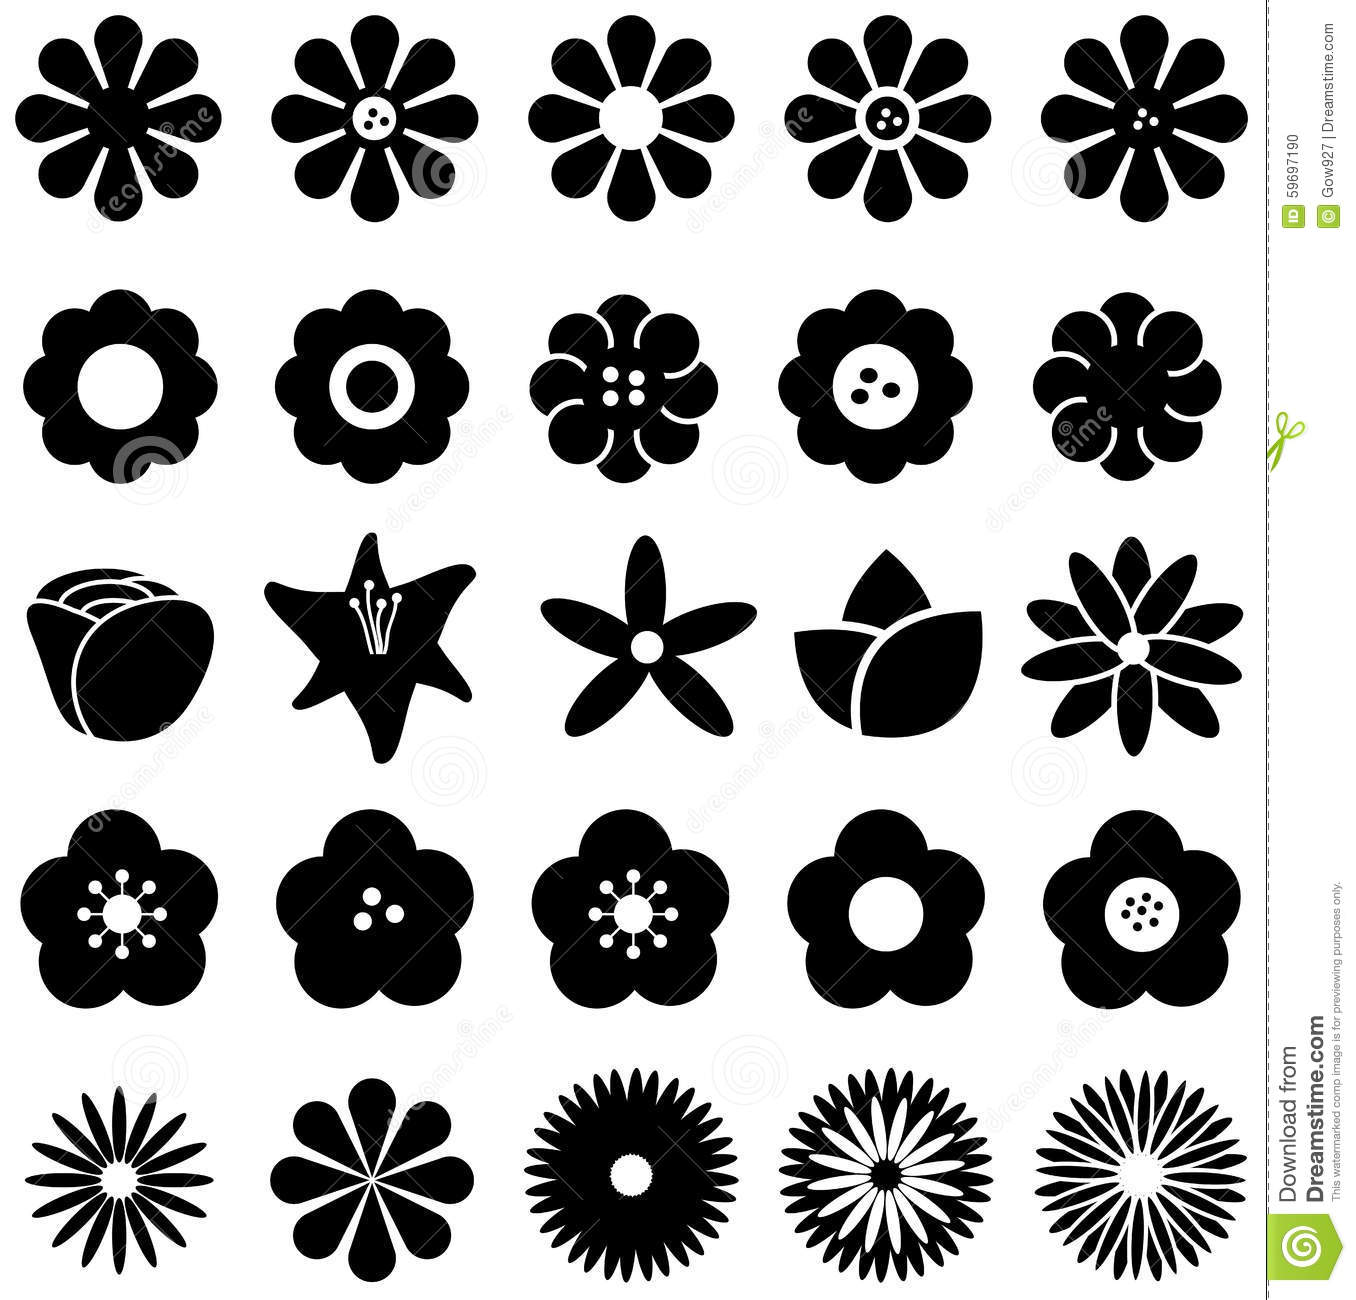 Simple Shape Geometric Flower Such As Rose Tulip Sunflower Daisy Stock Vector Image 59697190